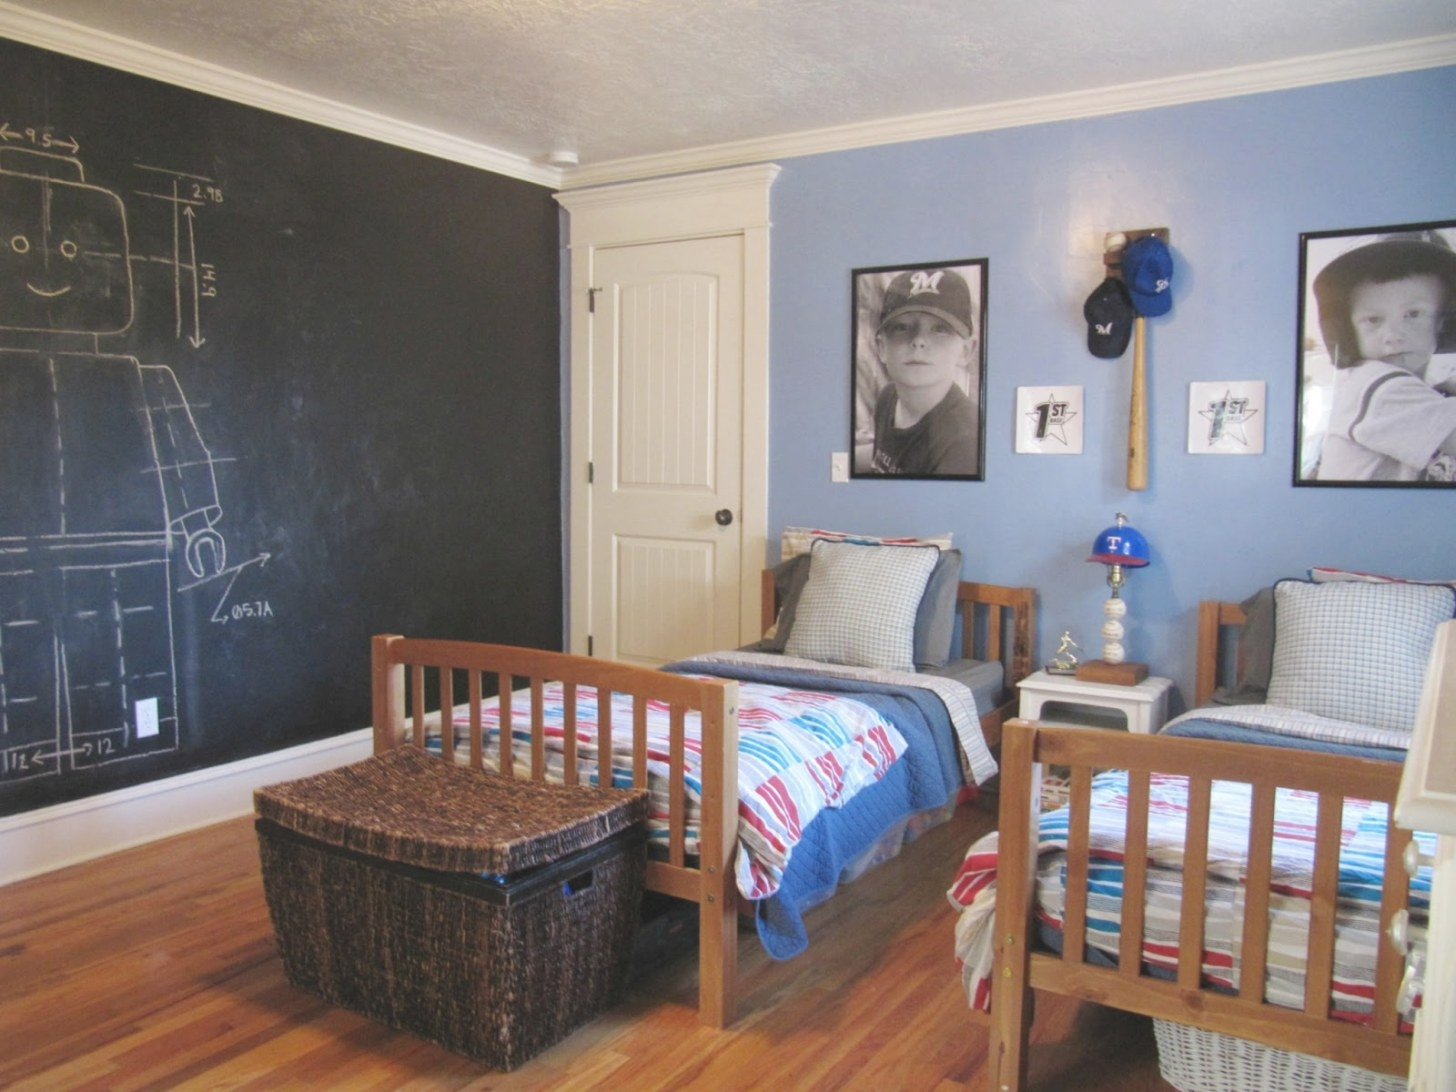 Boys Room Reveal - The Wicker House in Pictures Of Boys Bedrooms